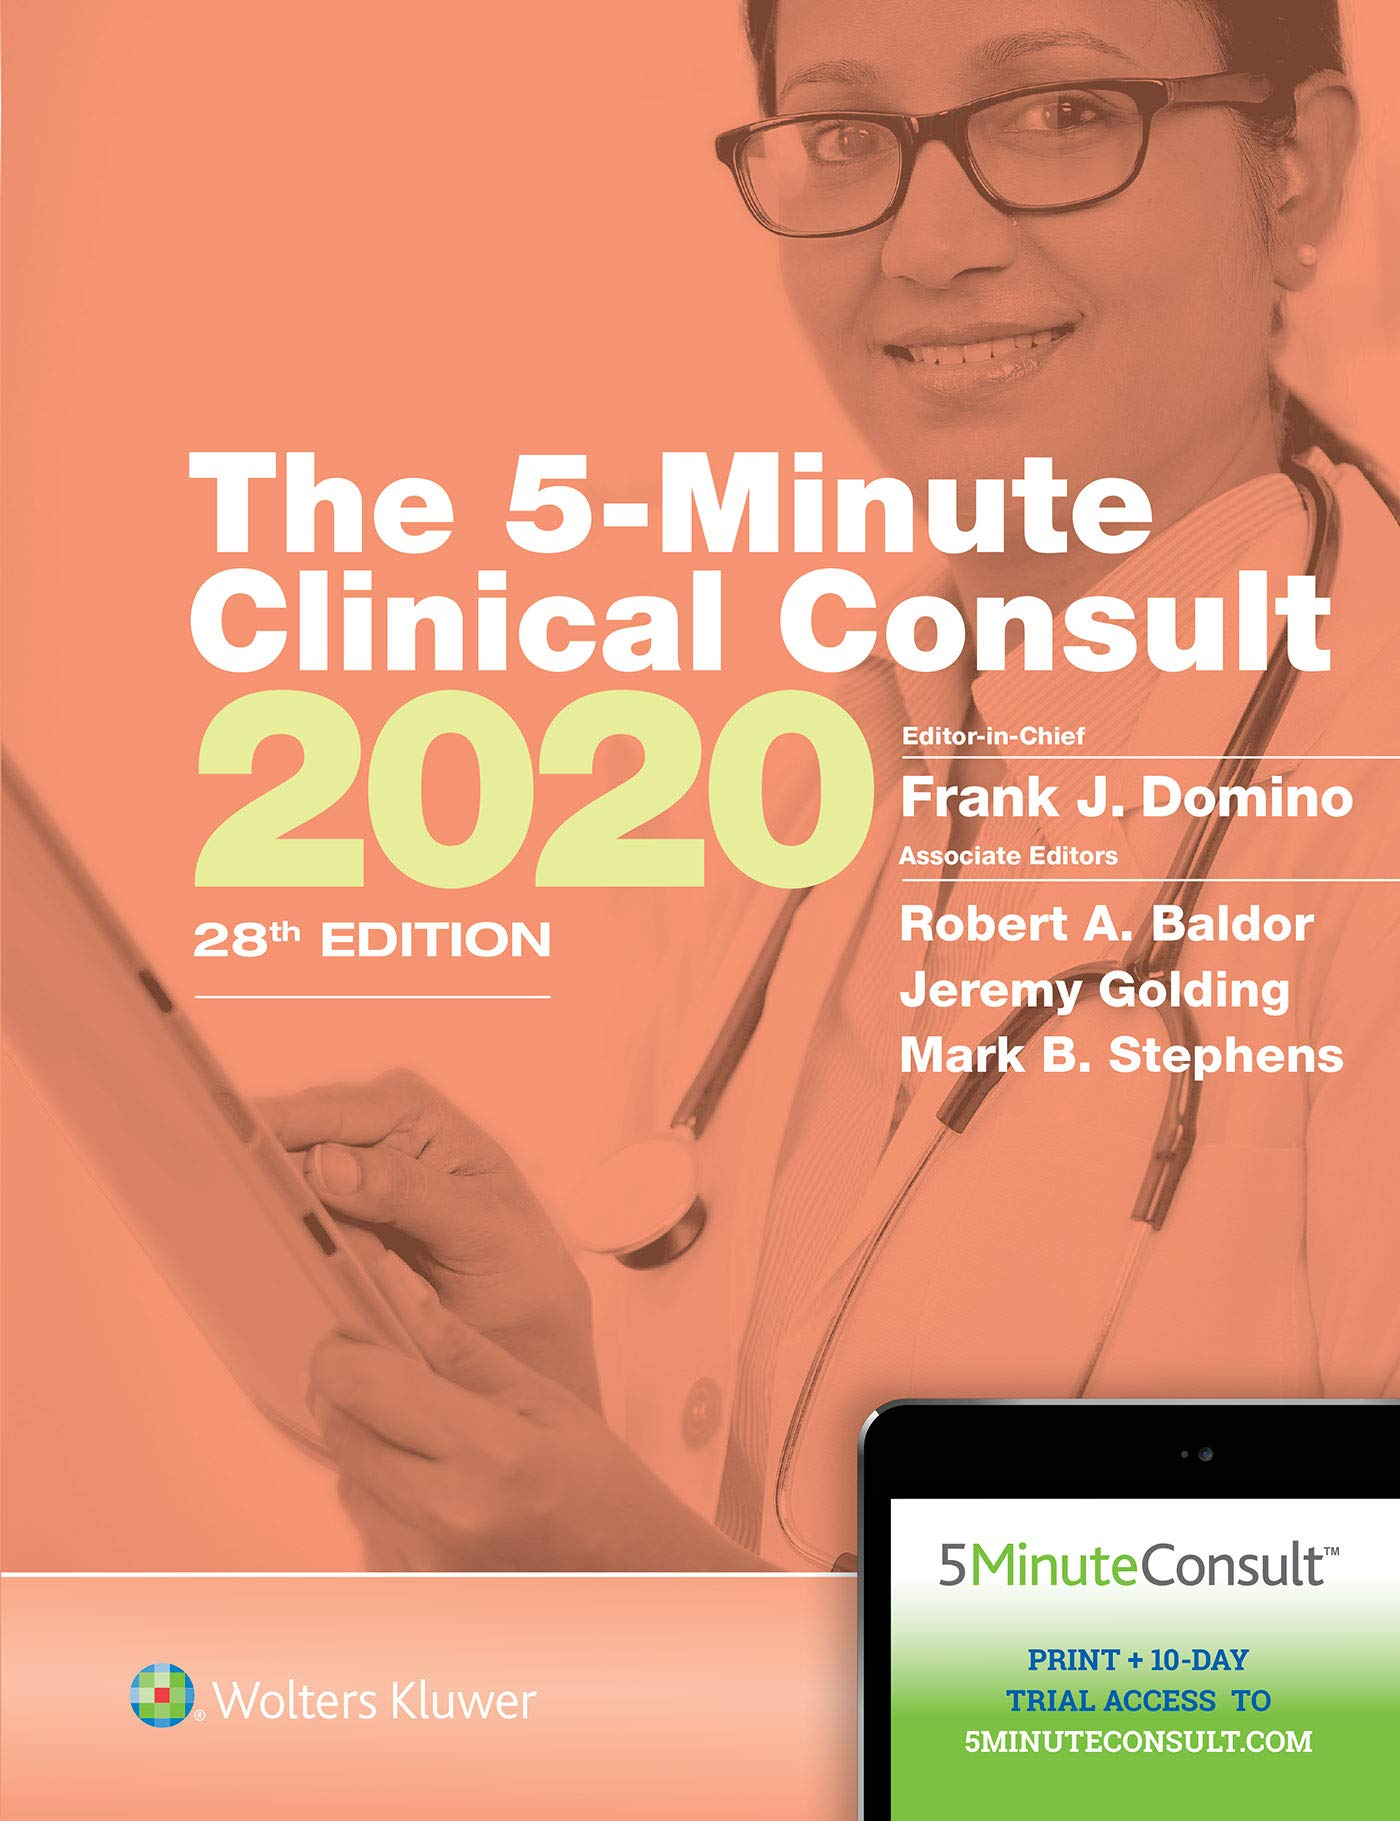 The 5-Minute Clinical Consult 2020 (The 5-Minute Consult Series) by LWW